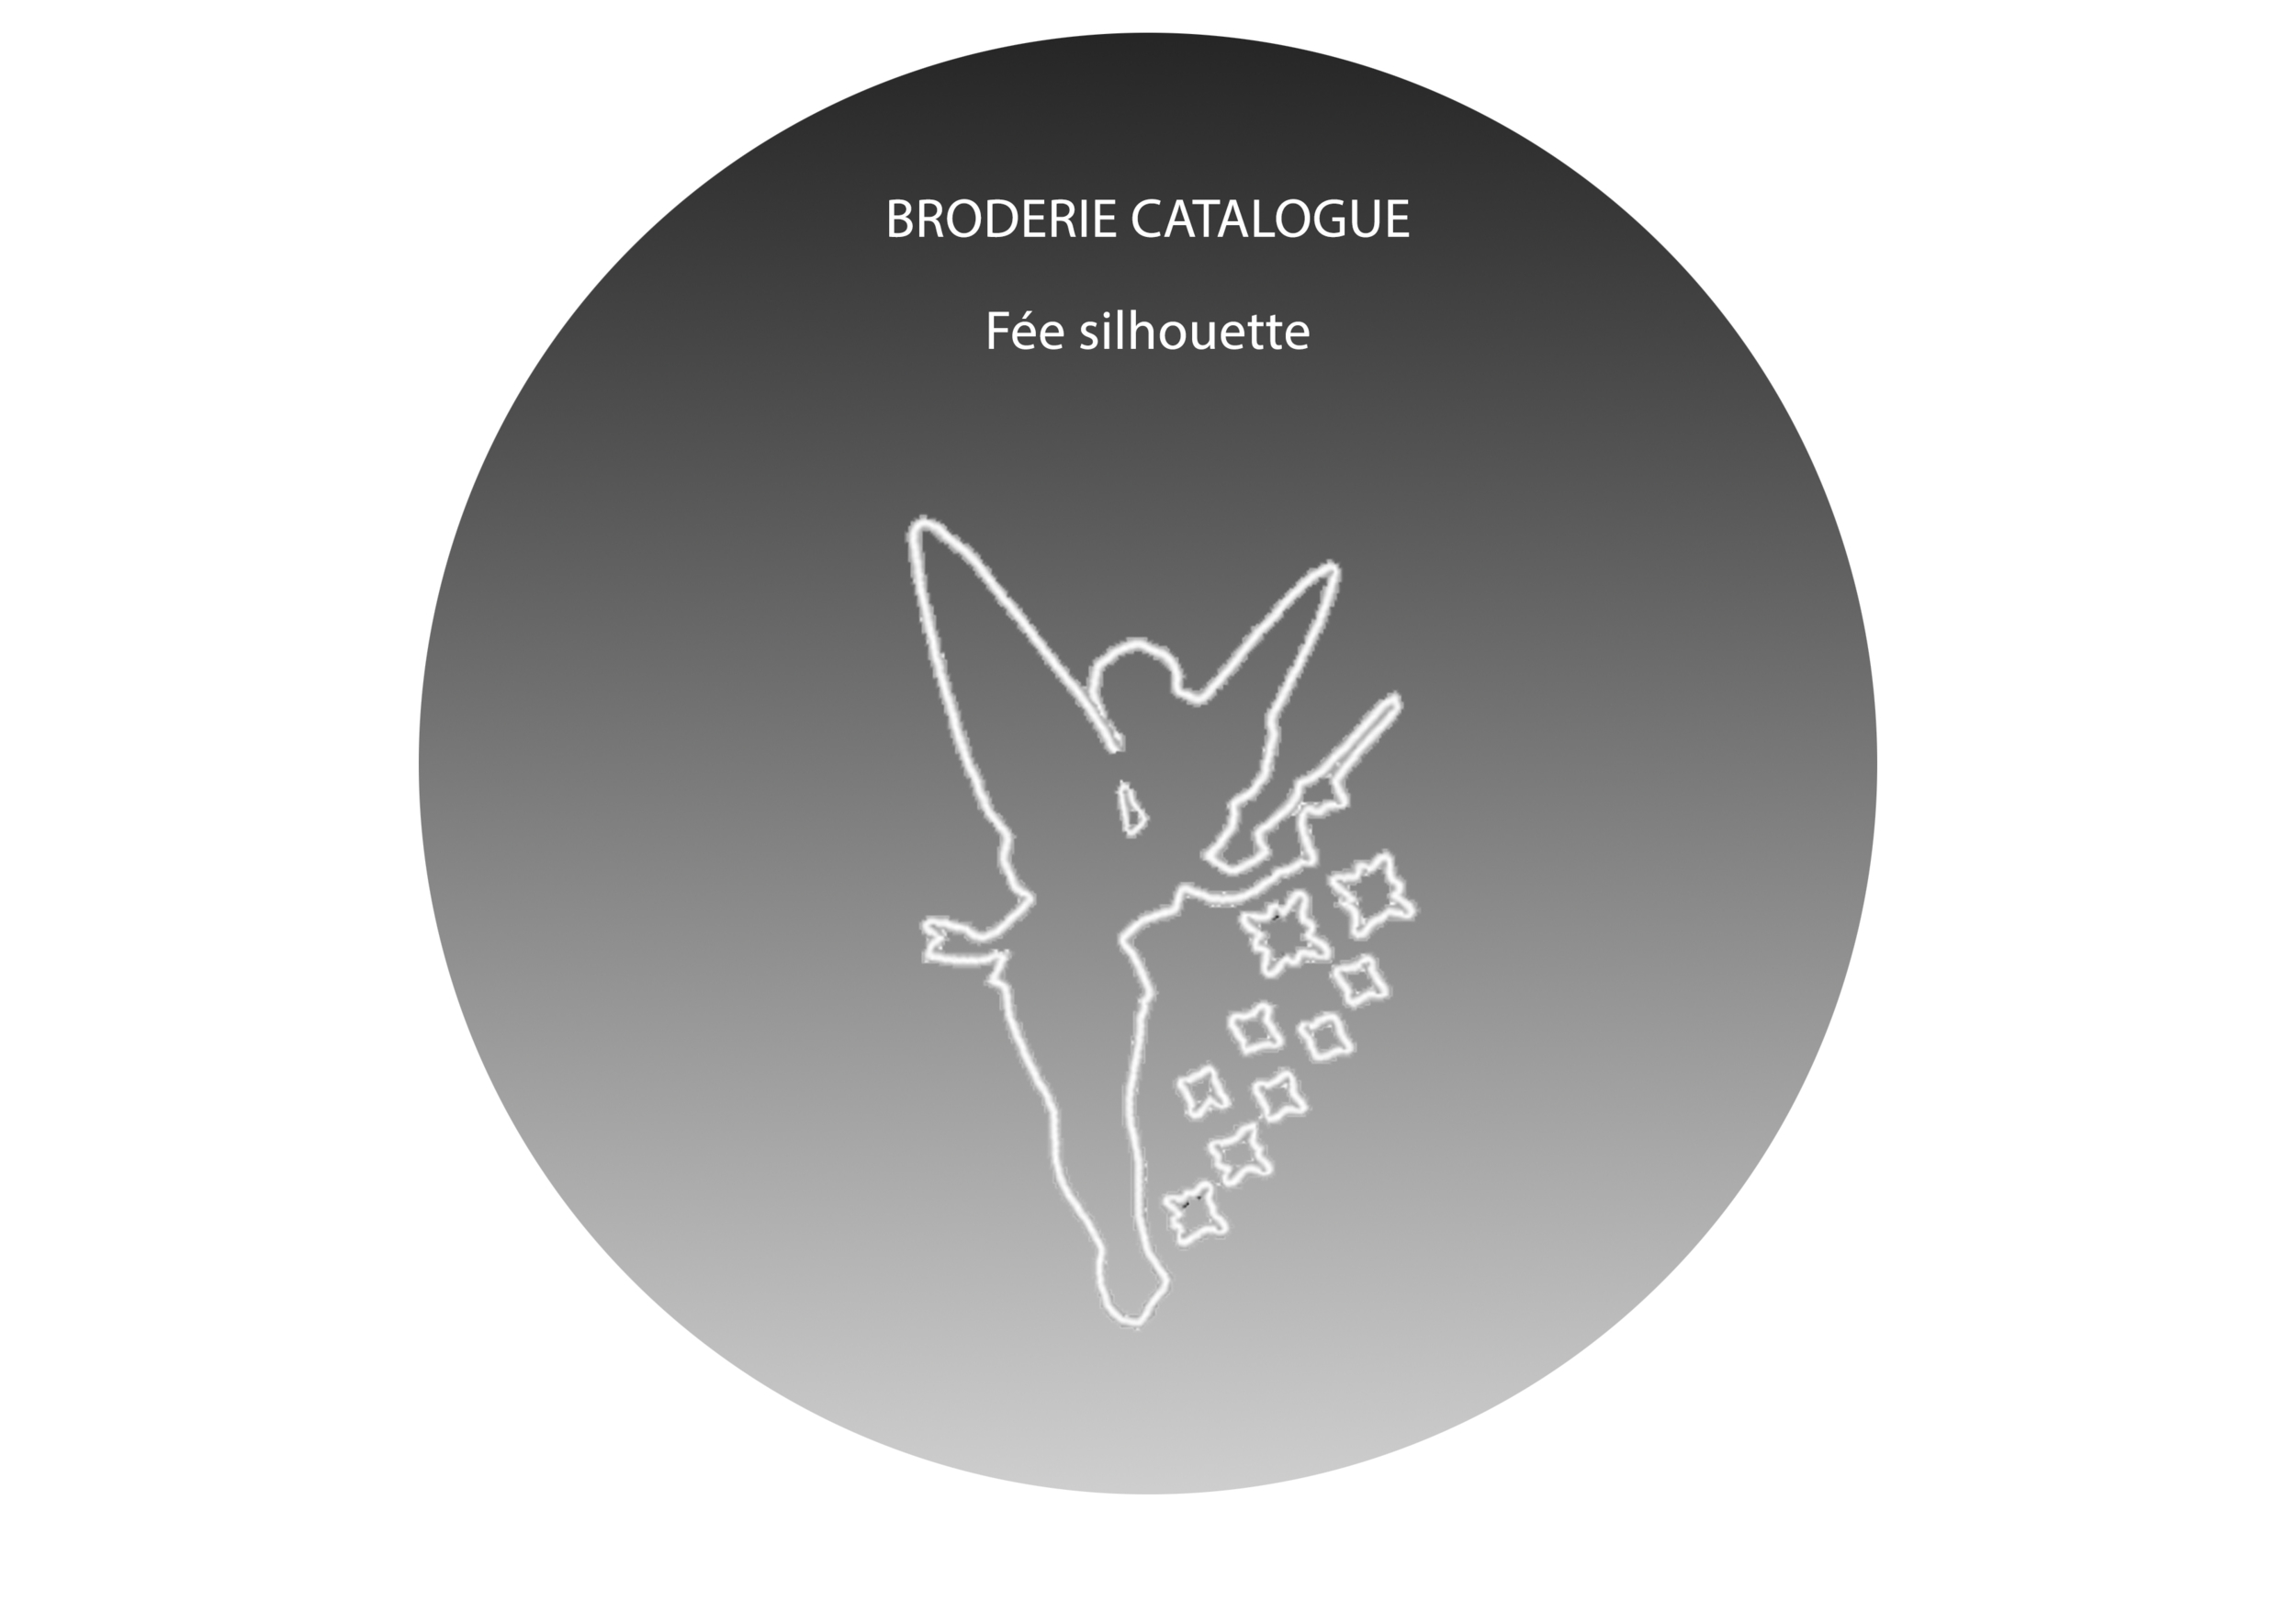 BRODERIE Catalogue Fee silhouette